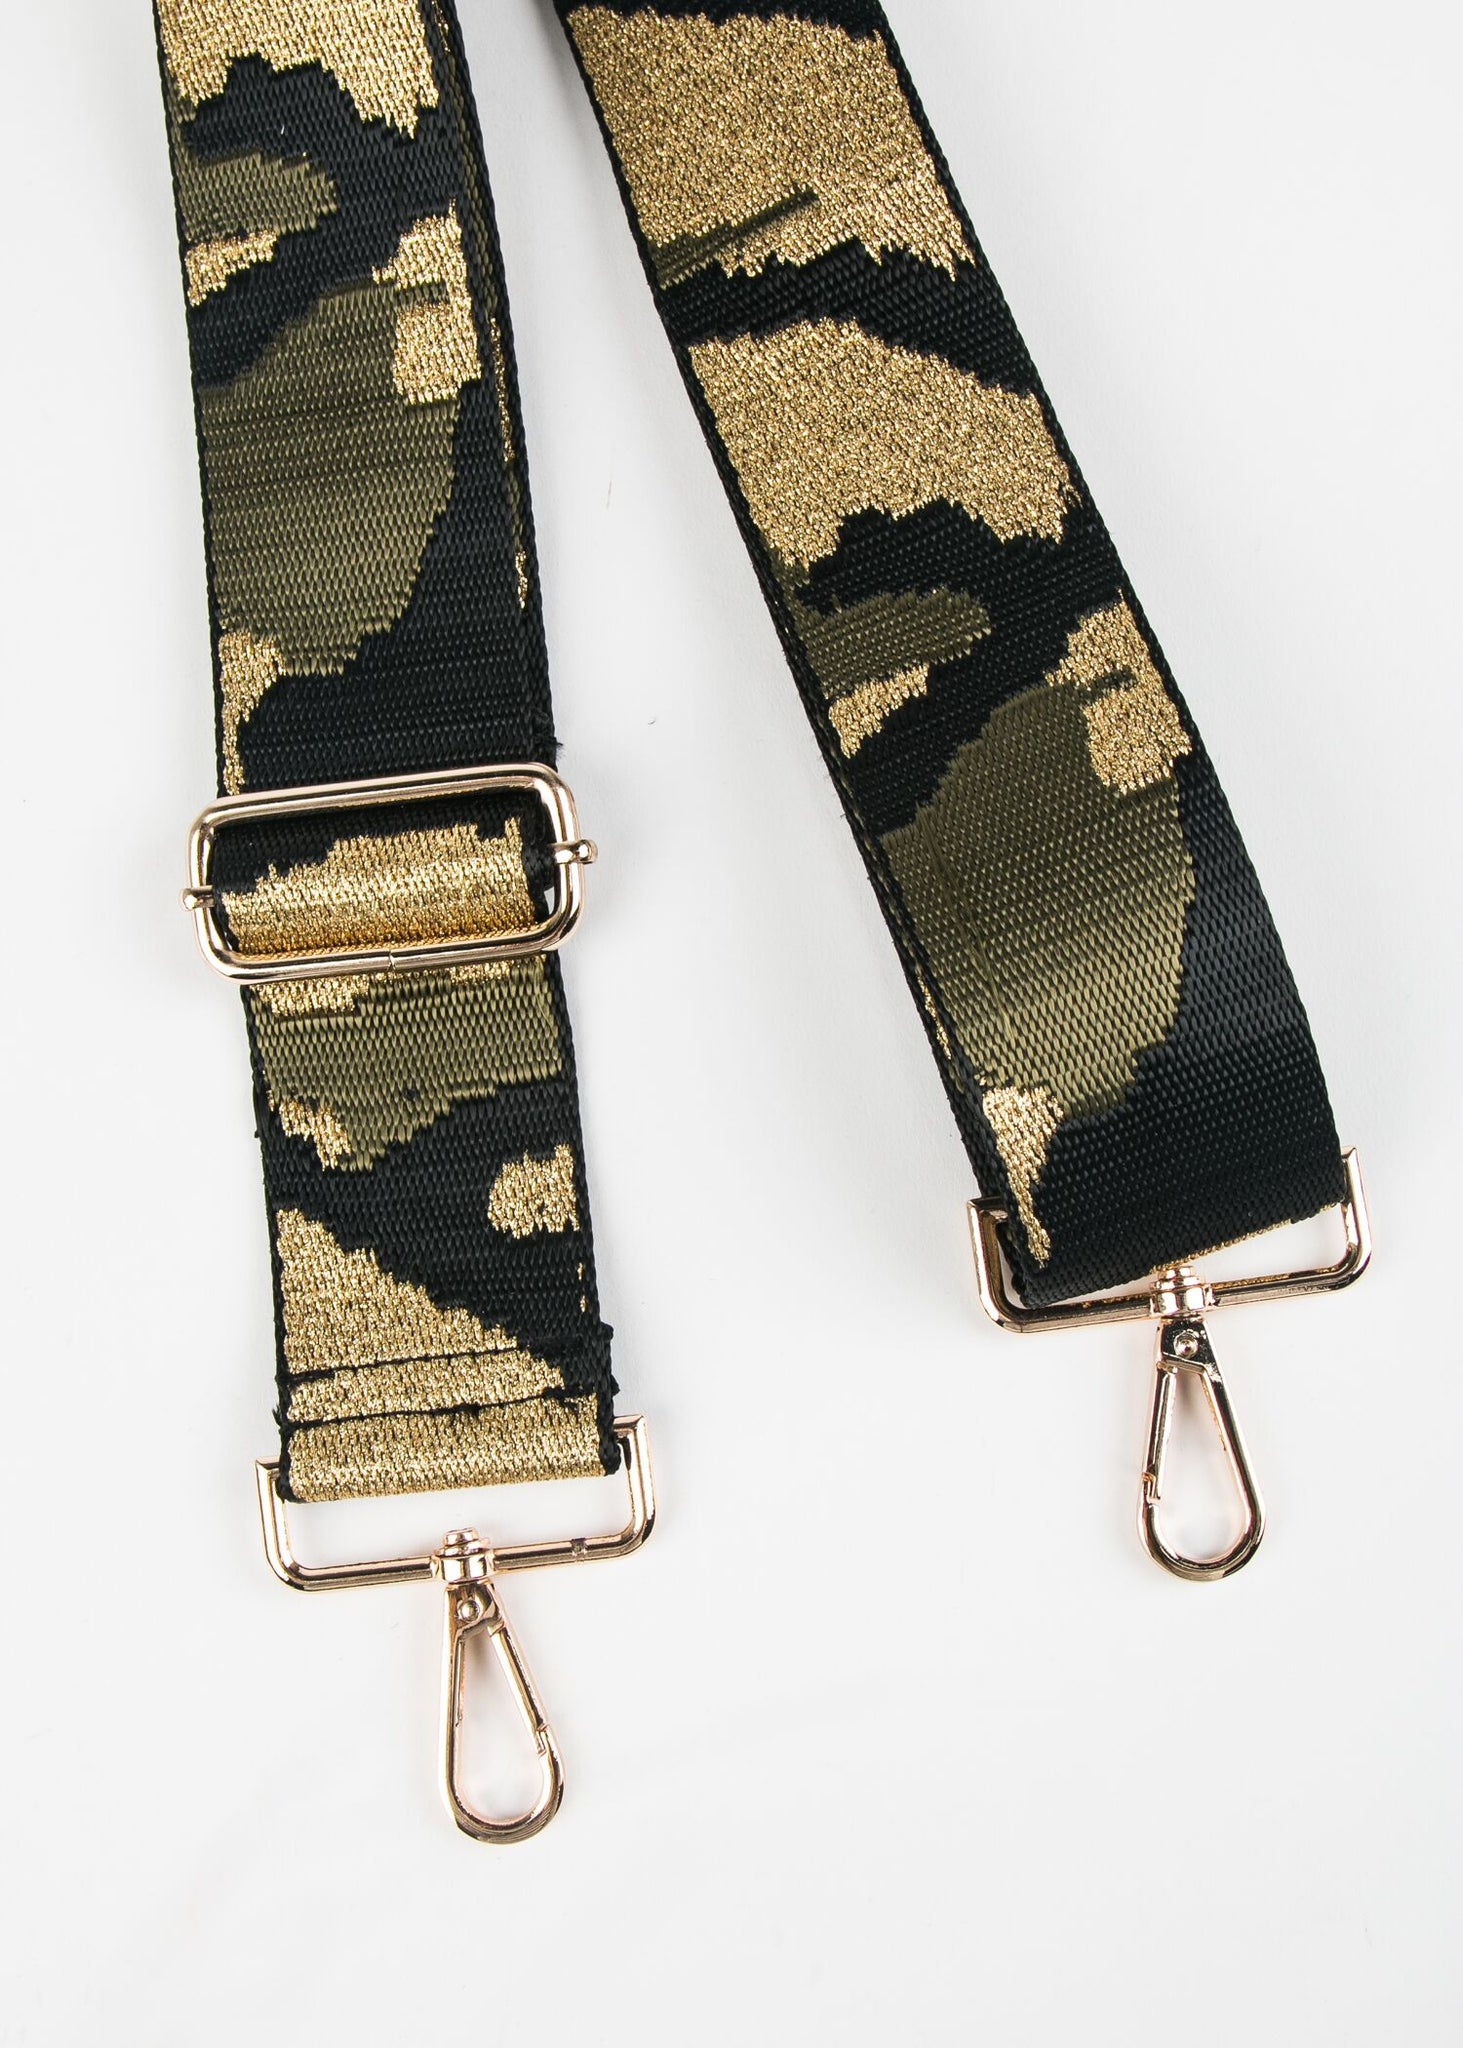 ADJUSTABLE CAMOUFLAGE GUITAR STRAP